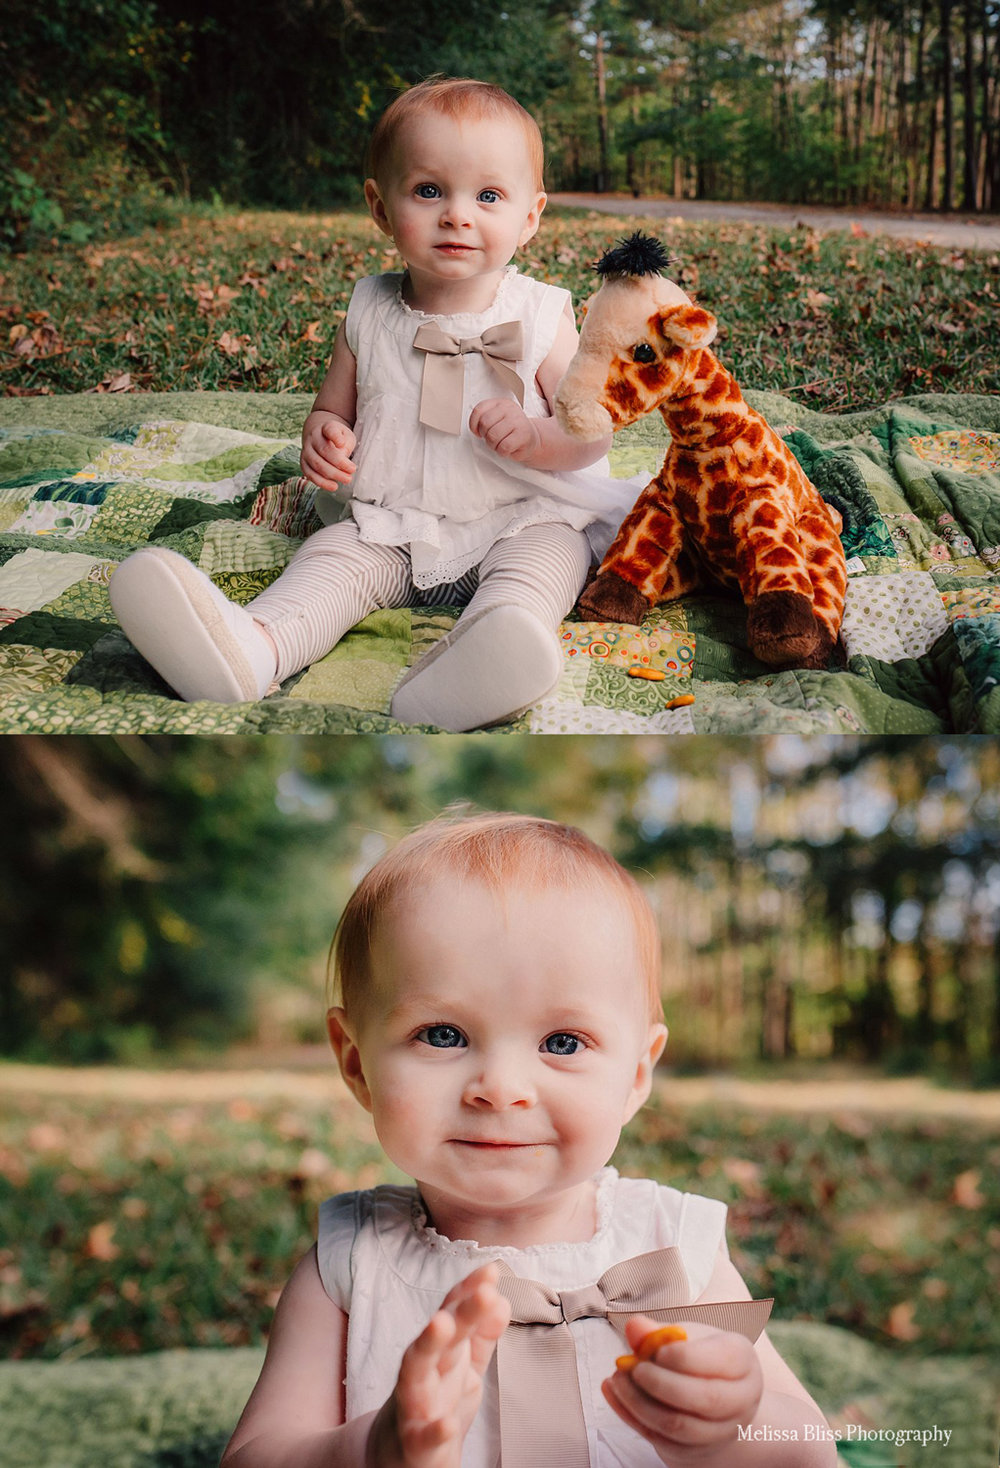 oak-grove-park-mini-session-first-year-portrait-melissa-bliss-photography-family-photographer-chesapeake.jpg